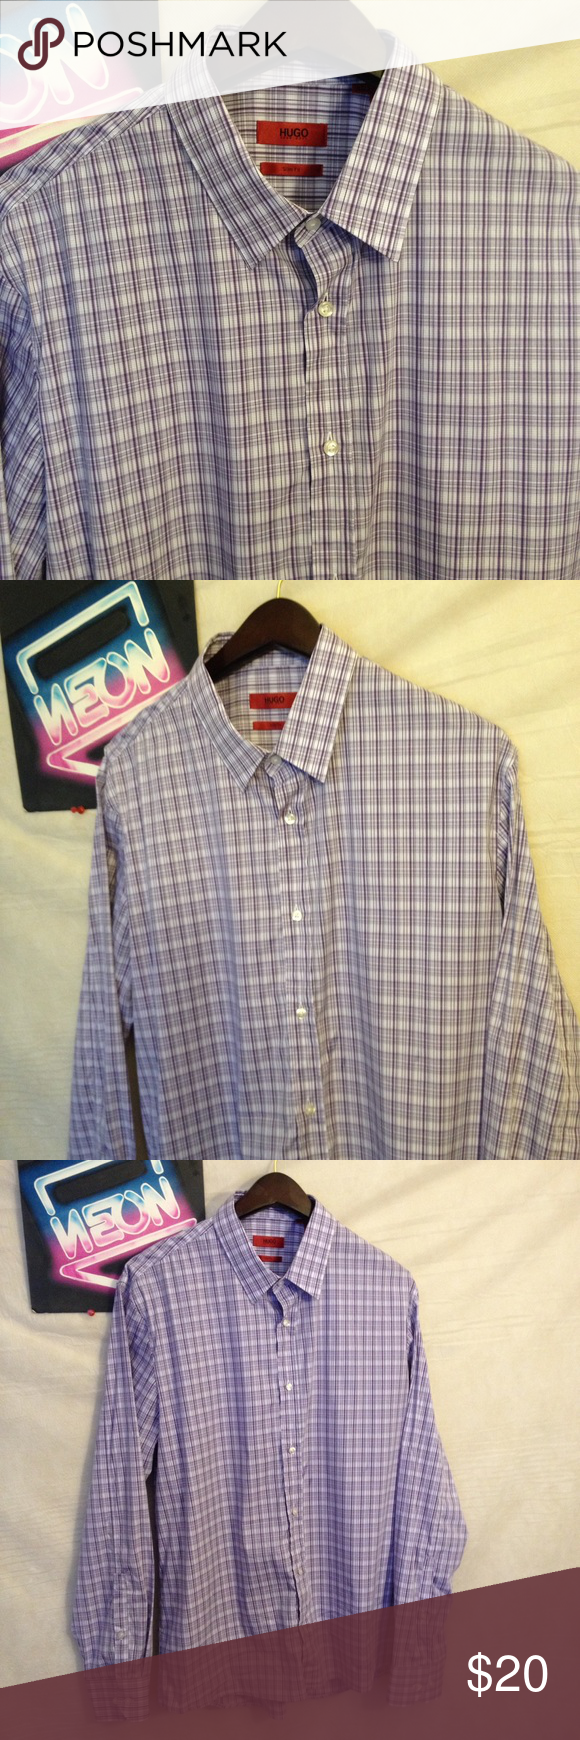 444af5050e Hugo Boss Men s Purple Cotton Shirt Size XL Hugo Boss Men s Purple Cotton Shirt  Size XL in very good condition. 1 day handling shipping from smoke free ...